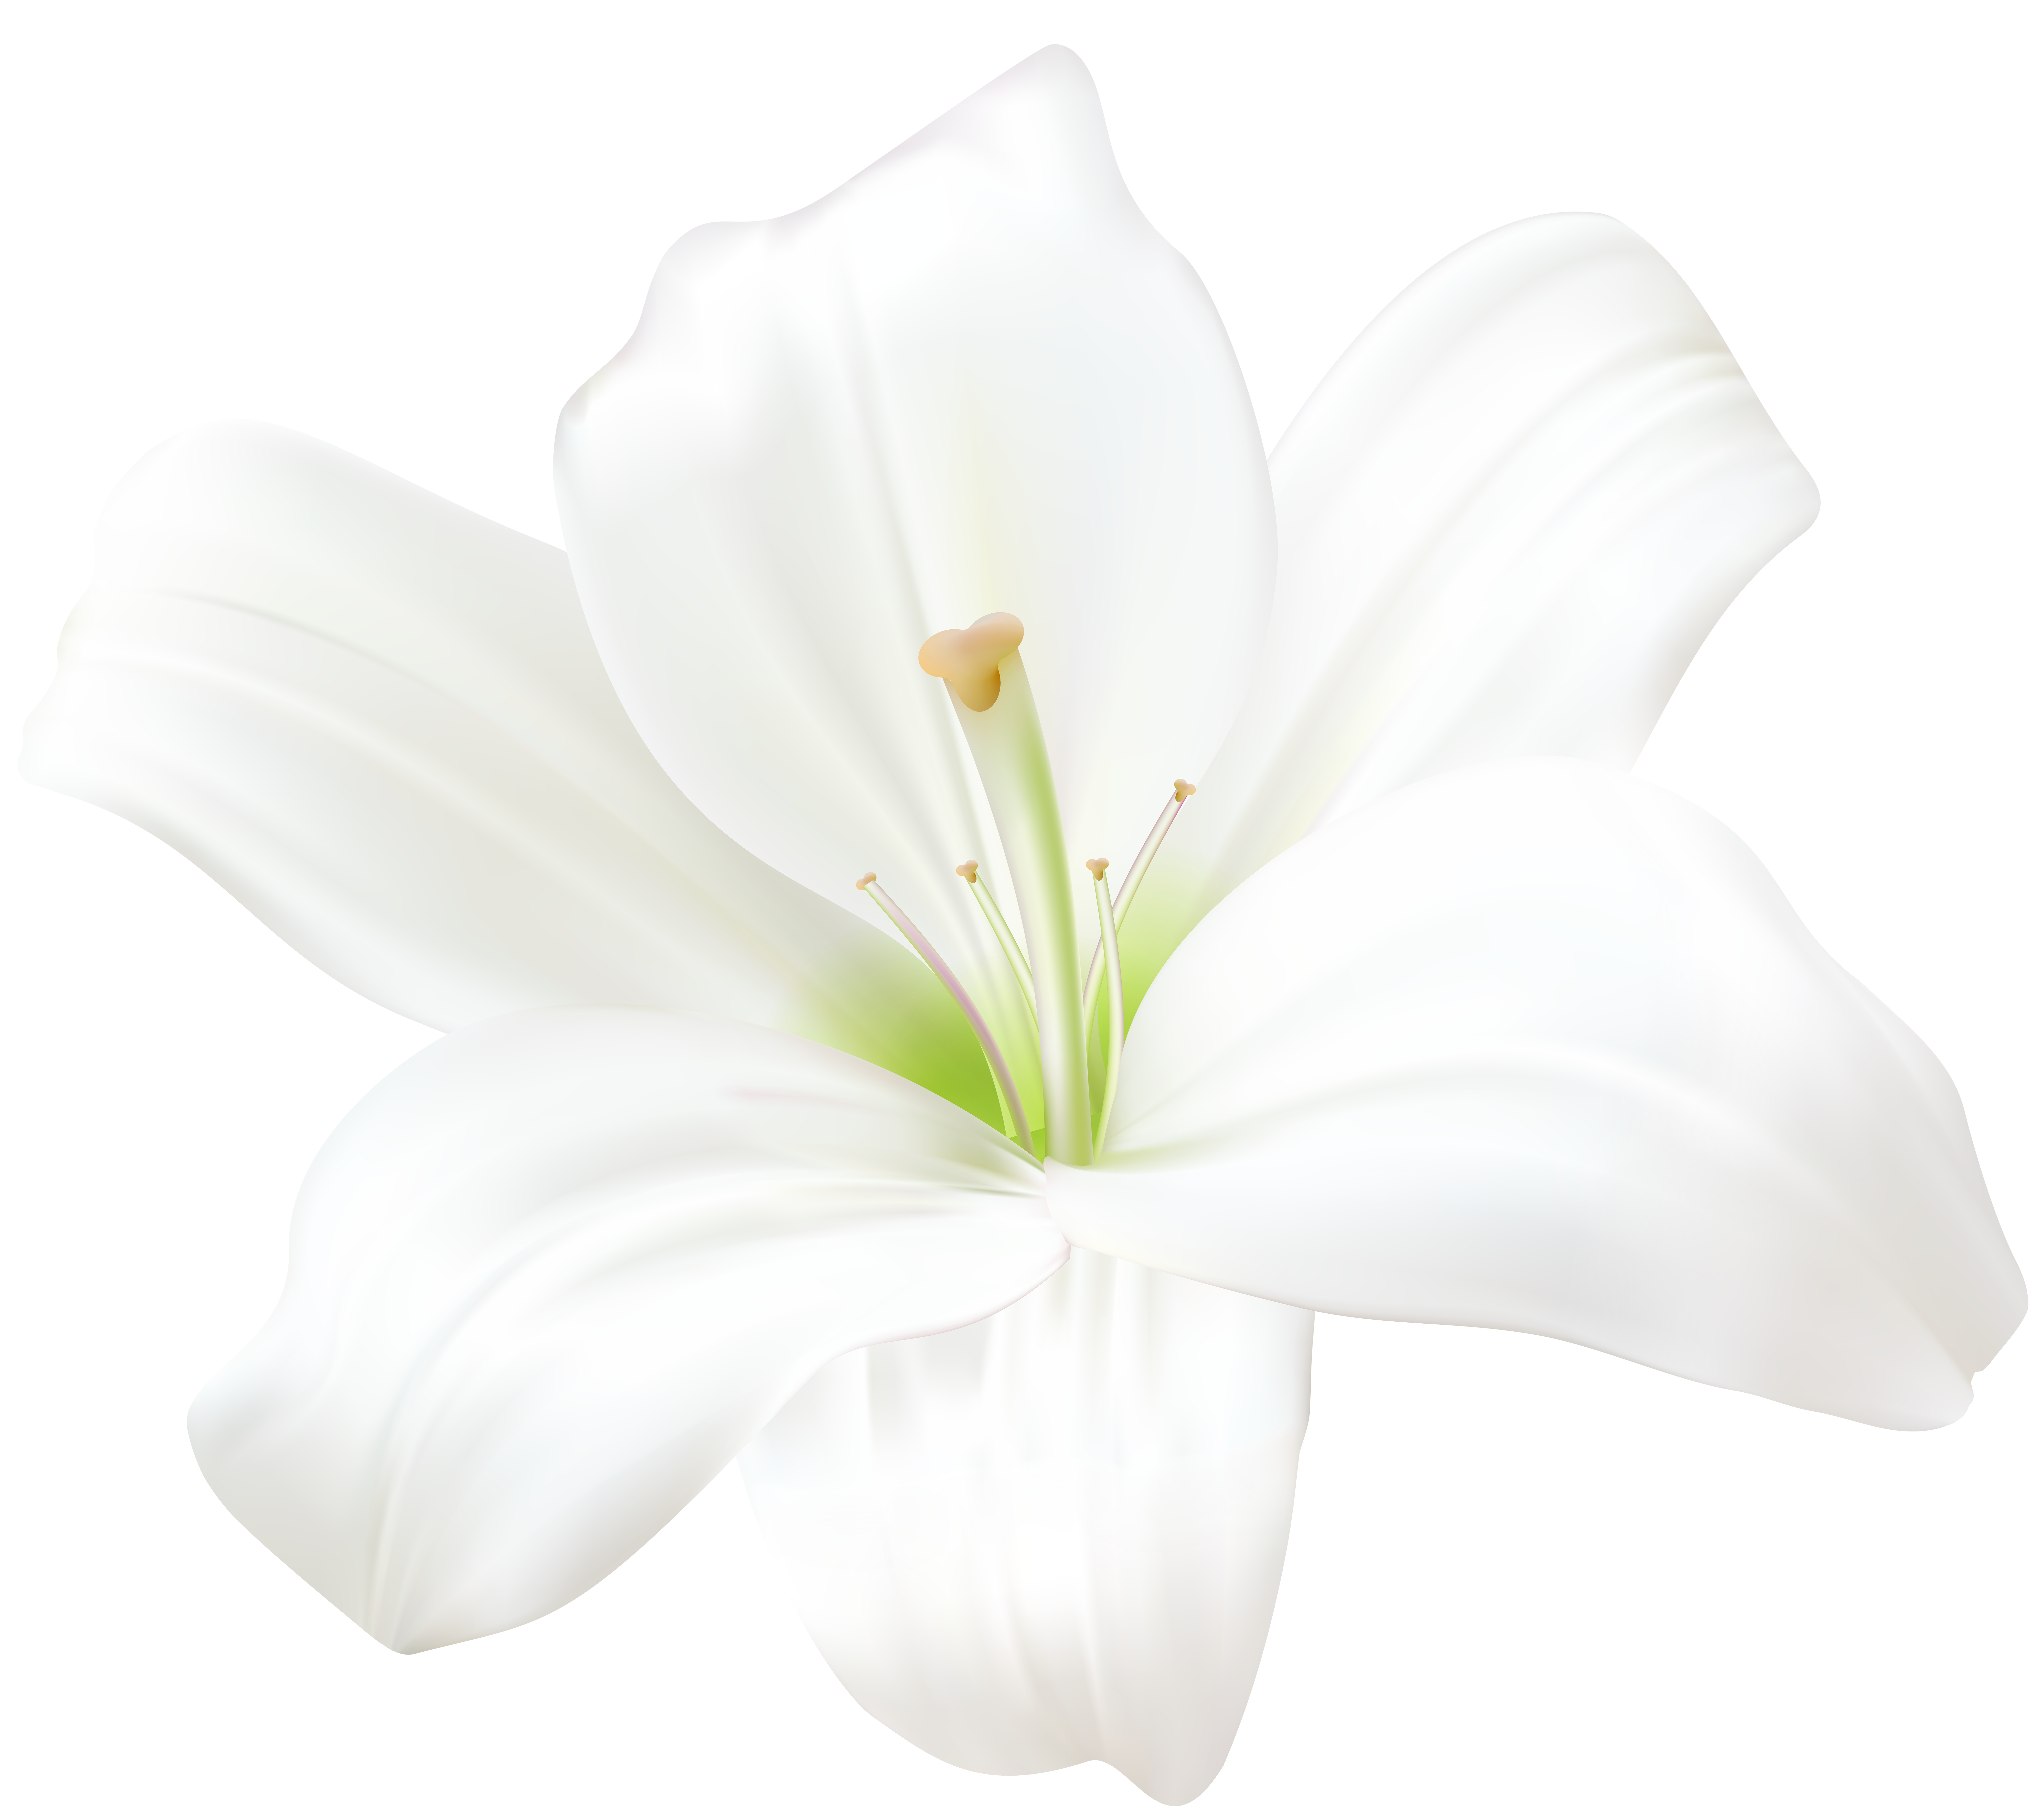 White lily flower png. Clip art image gallery